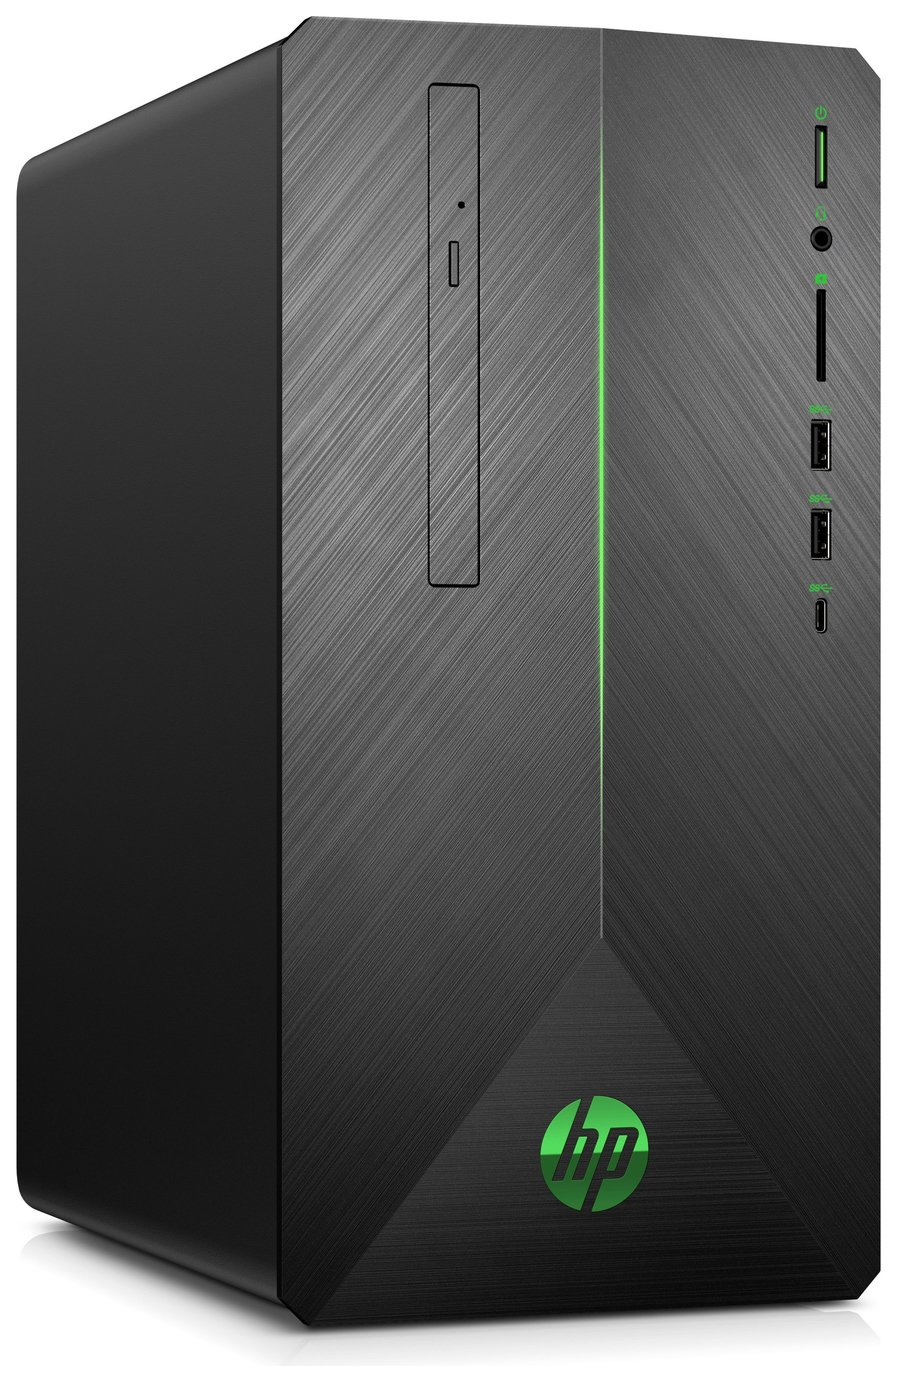 HP Pavilion i5 8GB/16GB Optane 1TB GTX1050 Gaming PC from HP